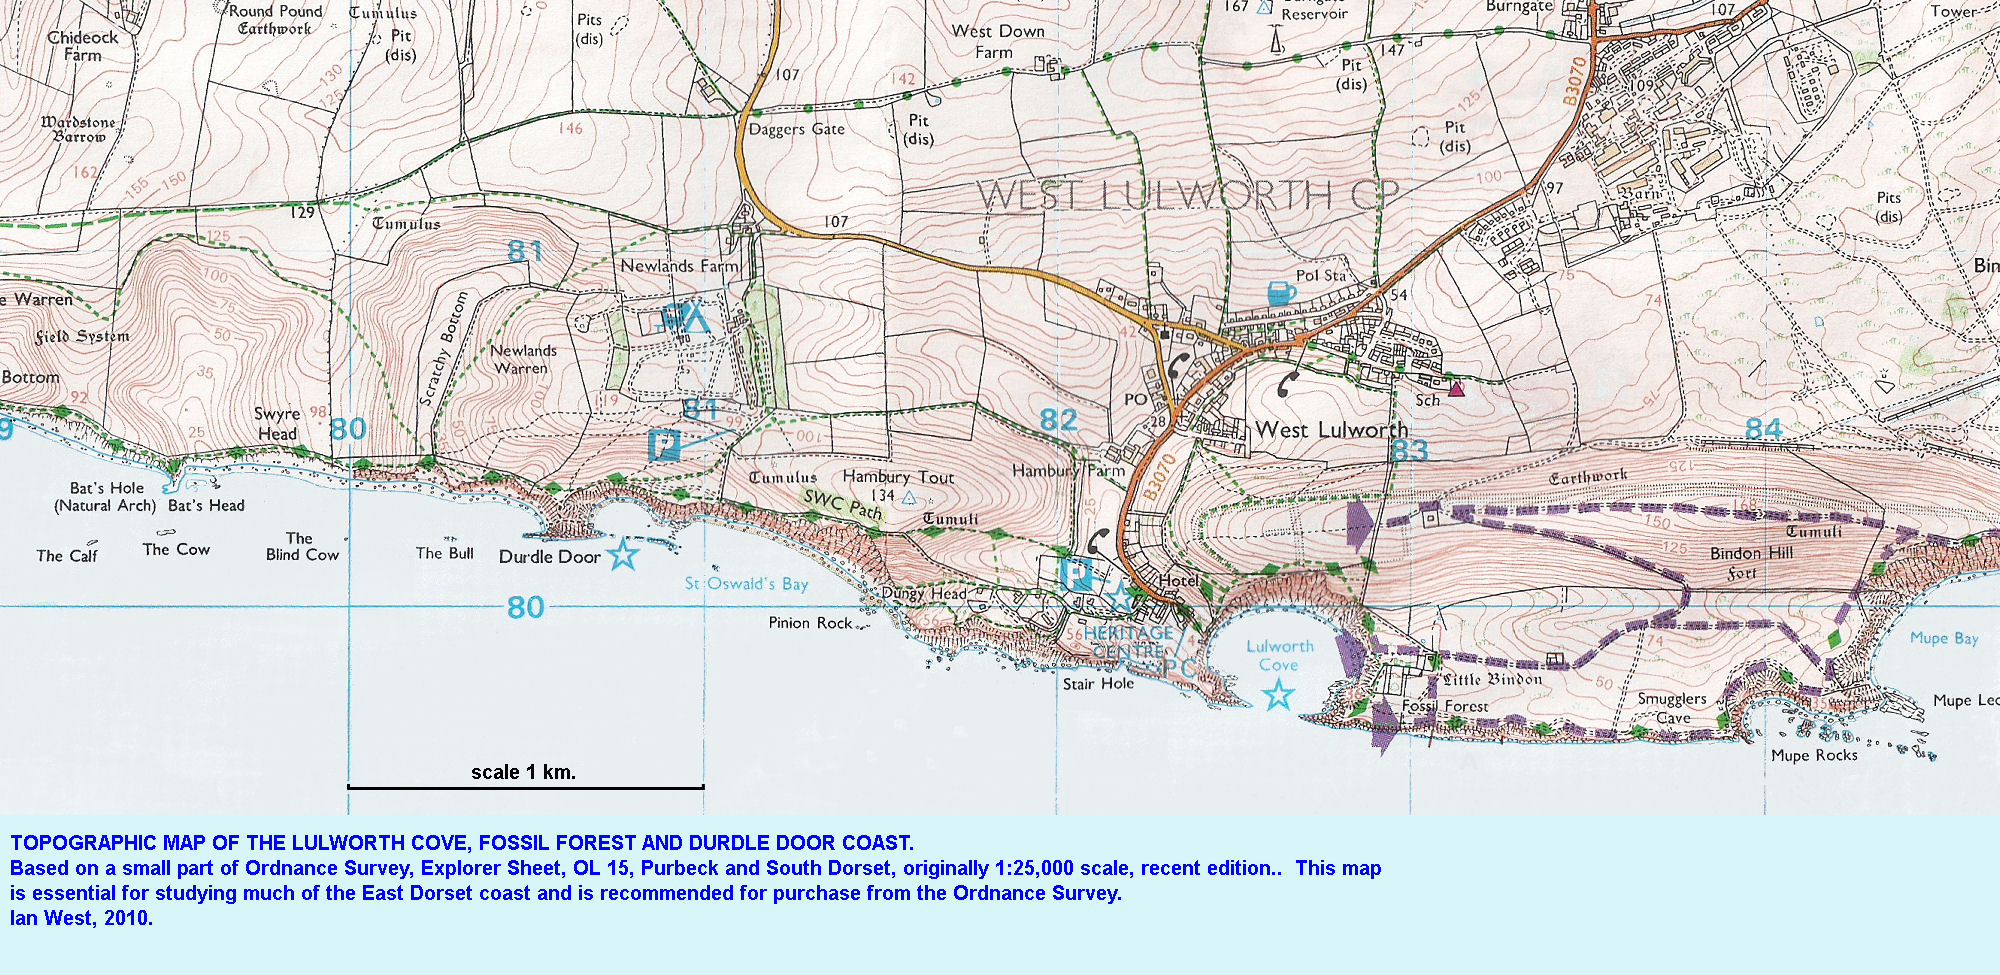 Lulworth Cove Map Mupe Bay and Bacon Hole   Geology by Ian West. Lulworth Cove Map